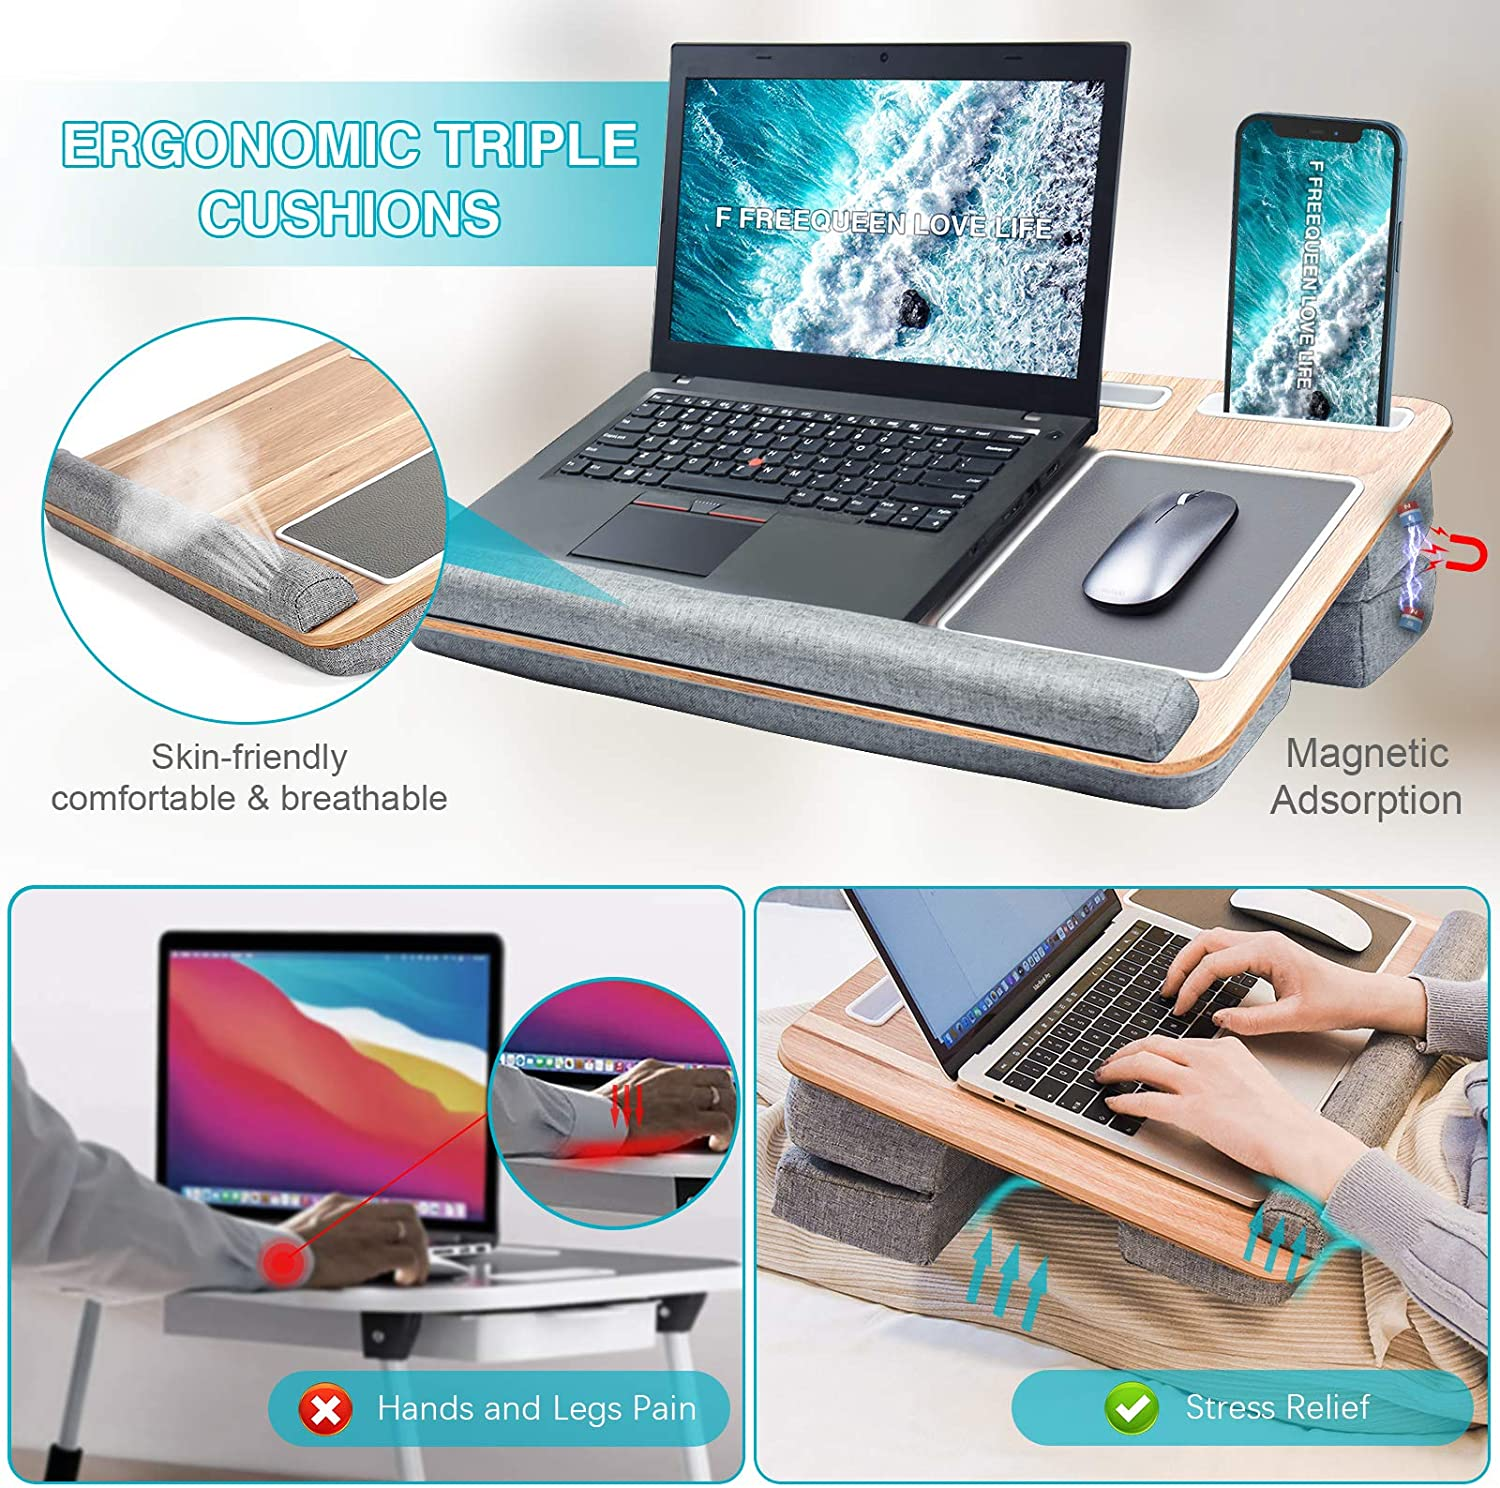 Travel Portable Laptop Table Multi-Function Computer Bed Trays for Kids Adults Student by FreeQueen Adjustable Laptop Desk with Triple Cushion/&Storage/&Wrist Rest Fits 12-17.3 Home Lap Desk